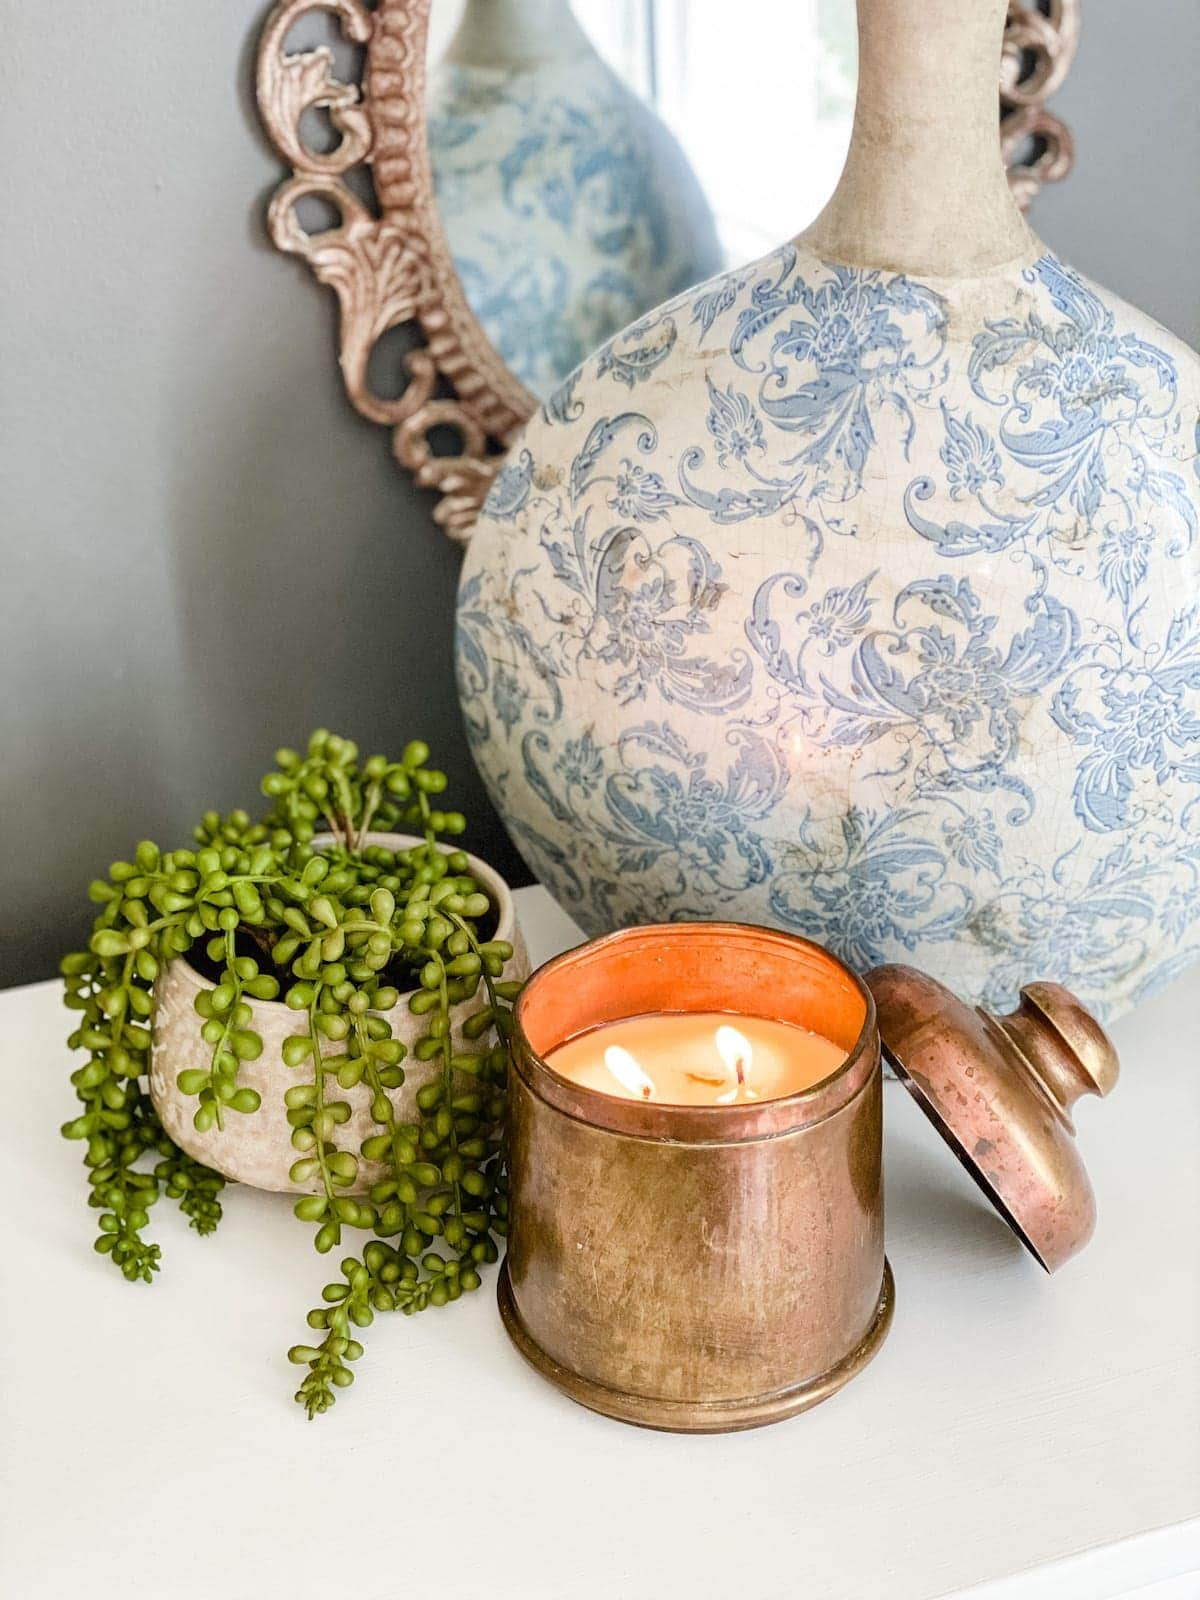 DIY candle made from a thrifted canister